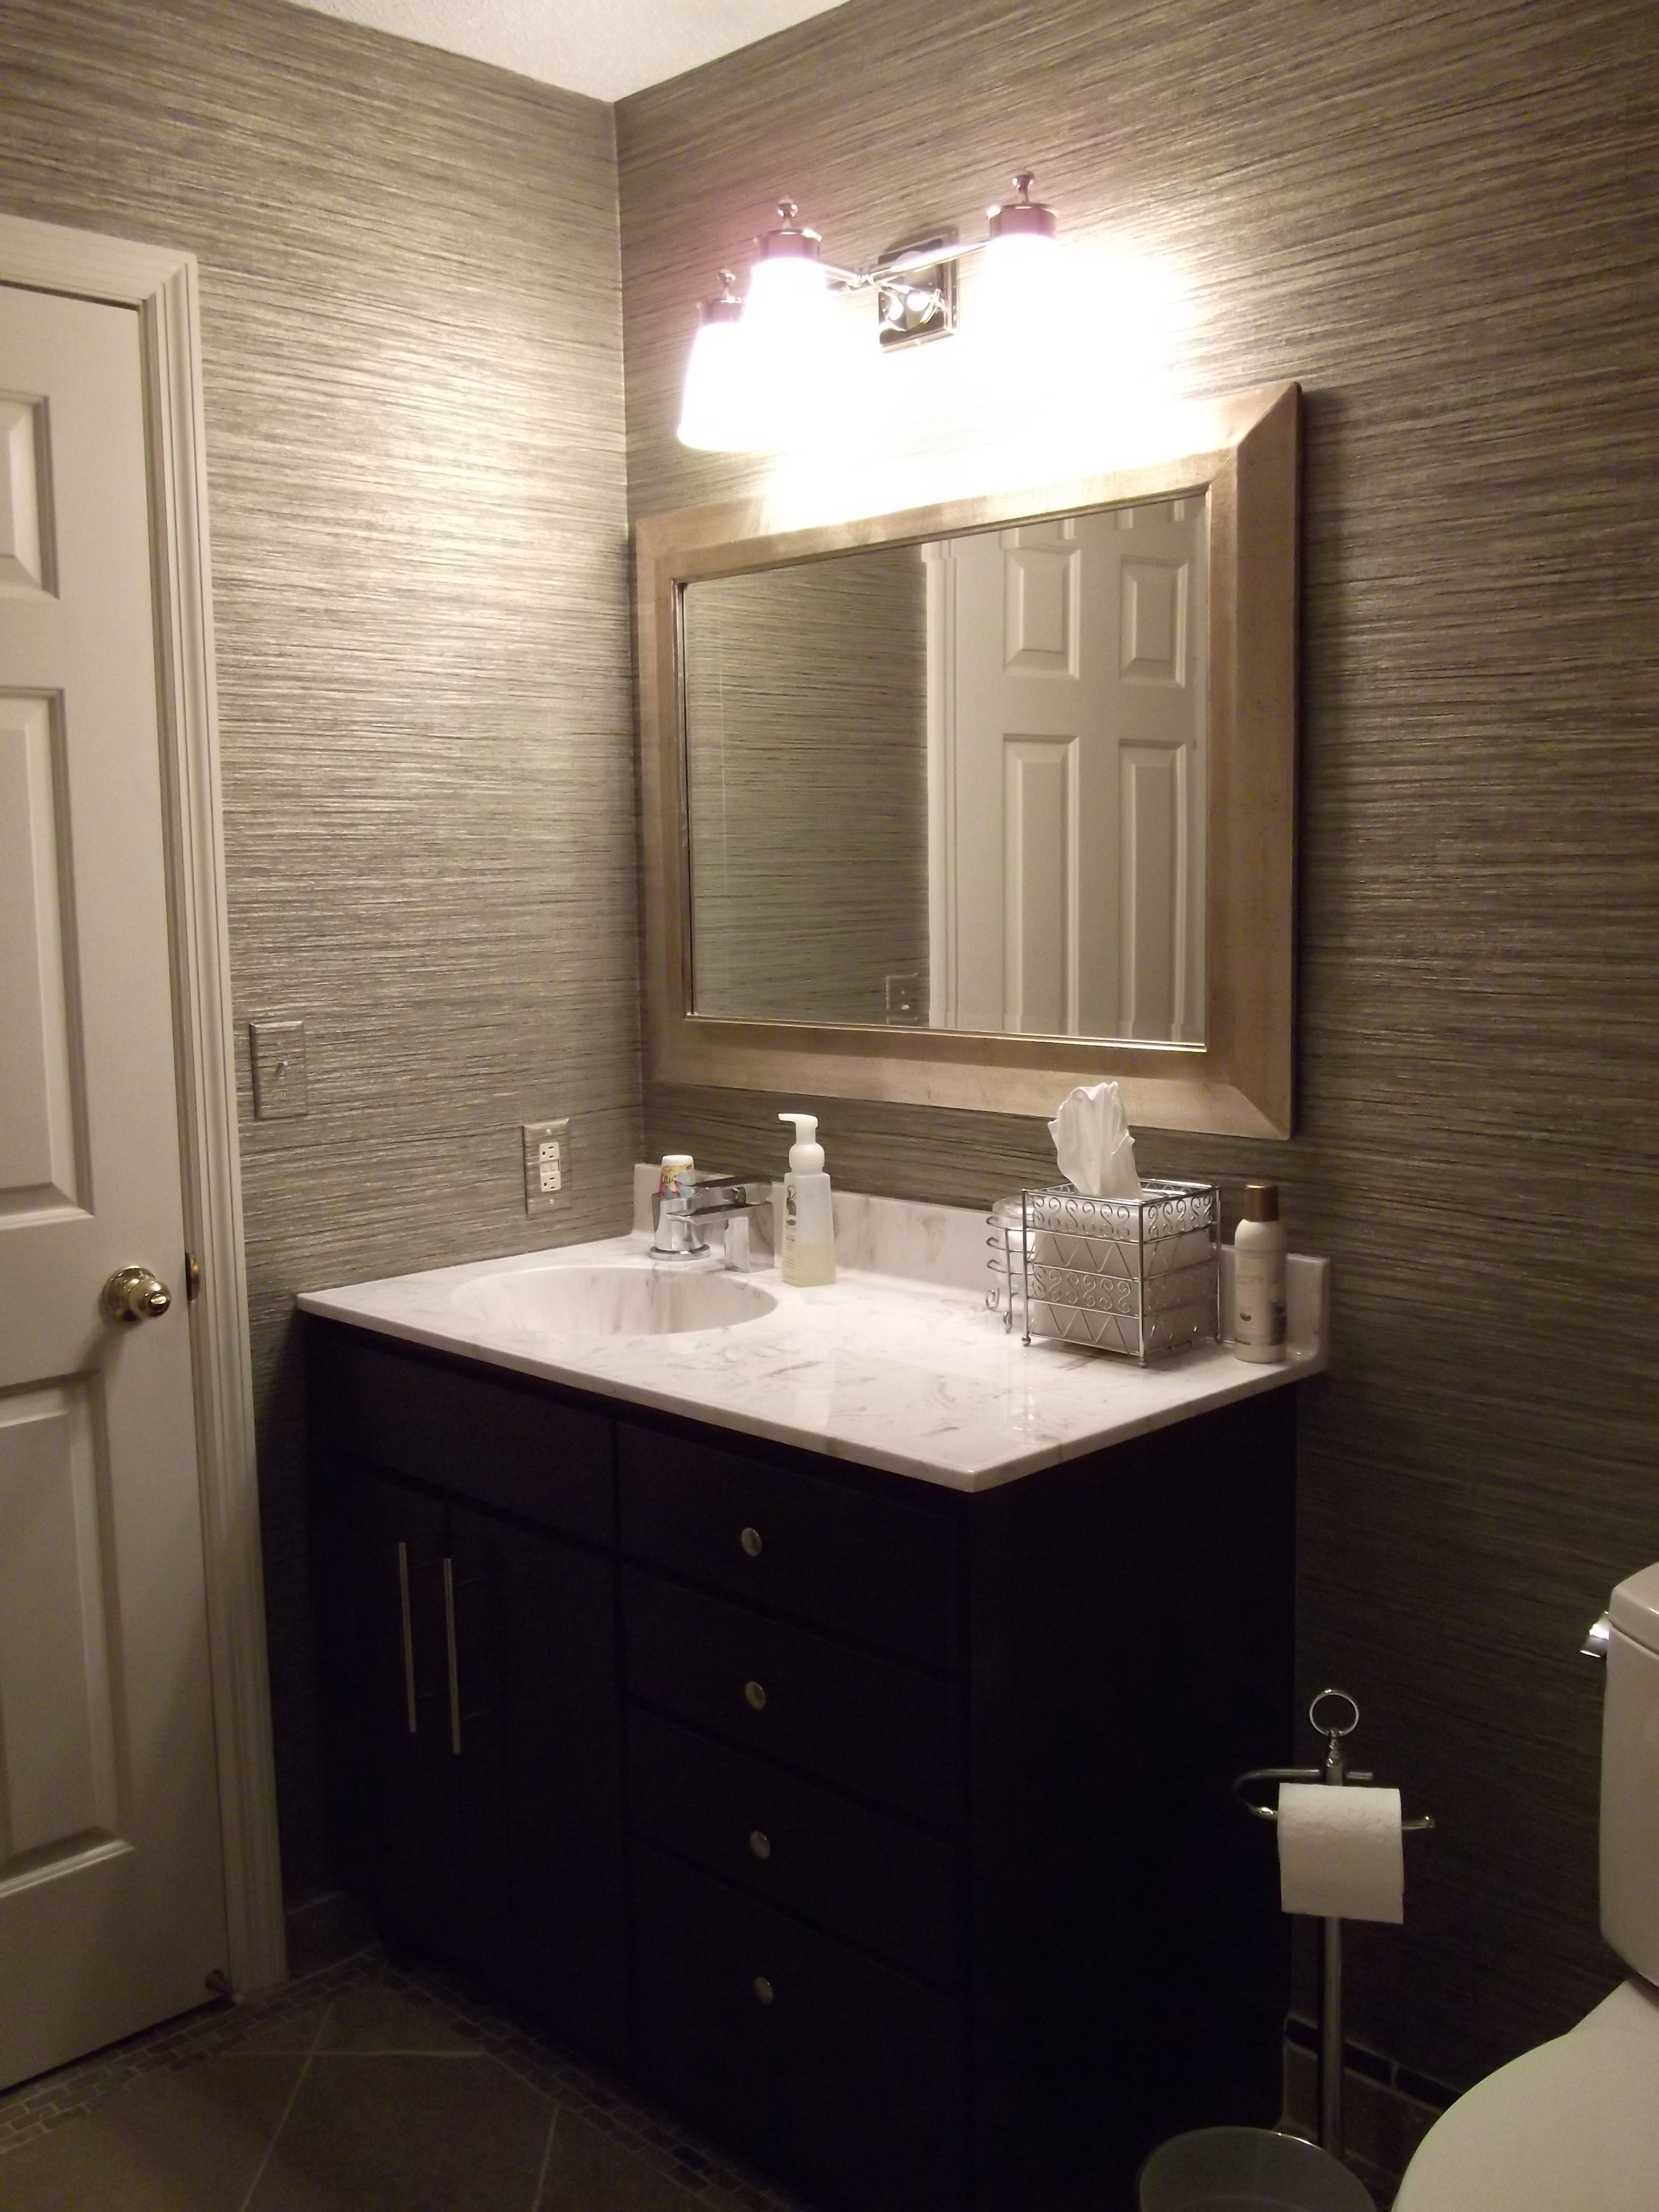 Vinyl Grasscloth Wallpaper In Guest Bathroom